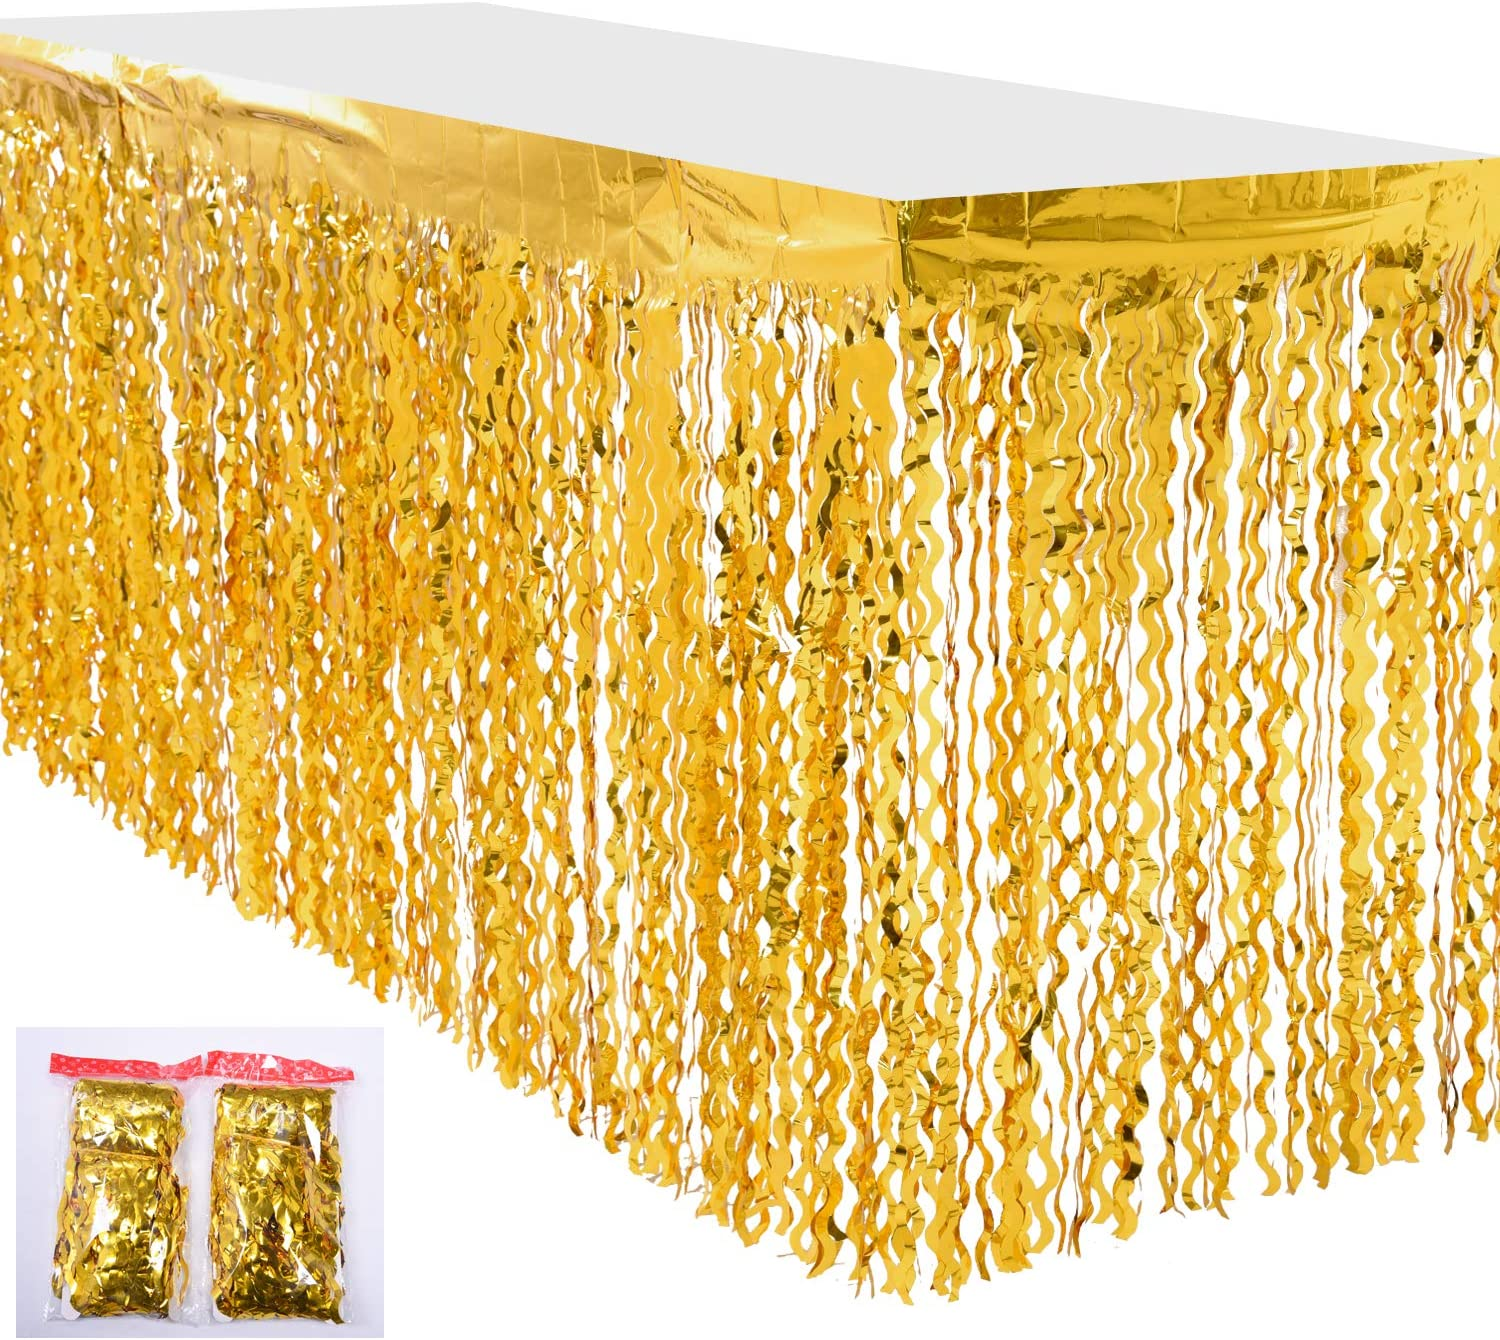 Amazon Com Leegleri Plastic Metallic Foil Fringe Table Skirt Tinsel Curly Willow Party Table Skirt Banner For Mardi Gras Party Wavy Golden 2 Pack Kitchen Dining